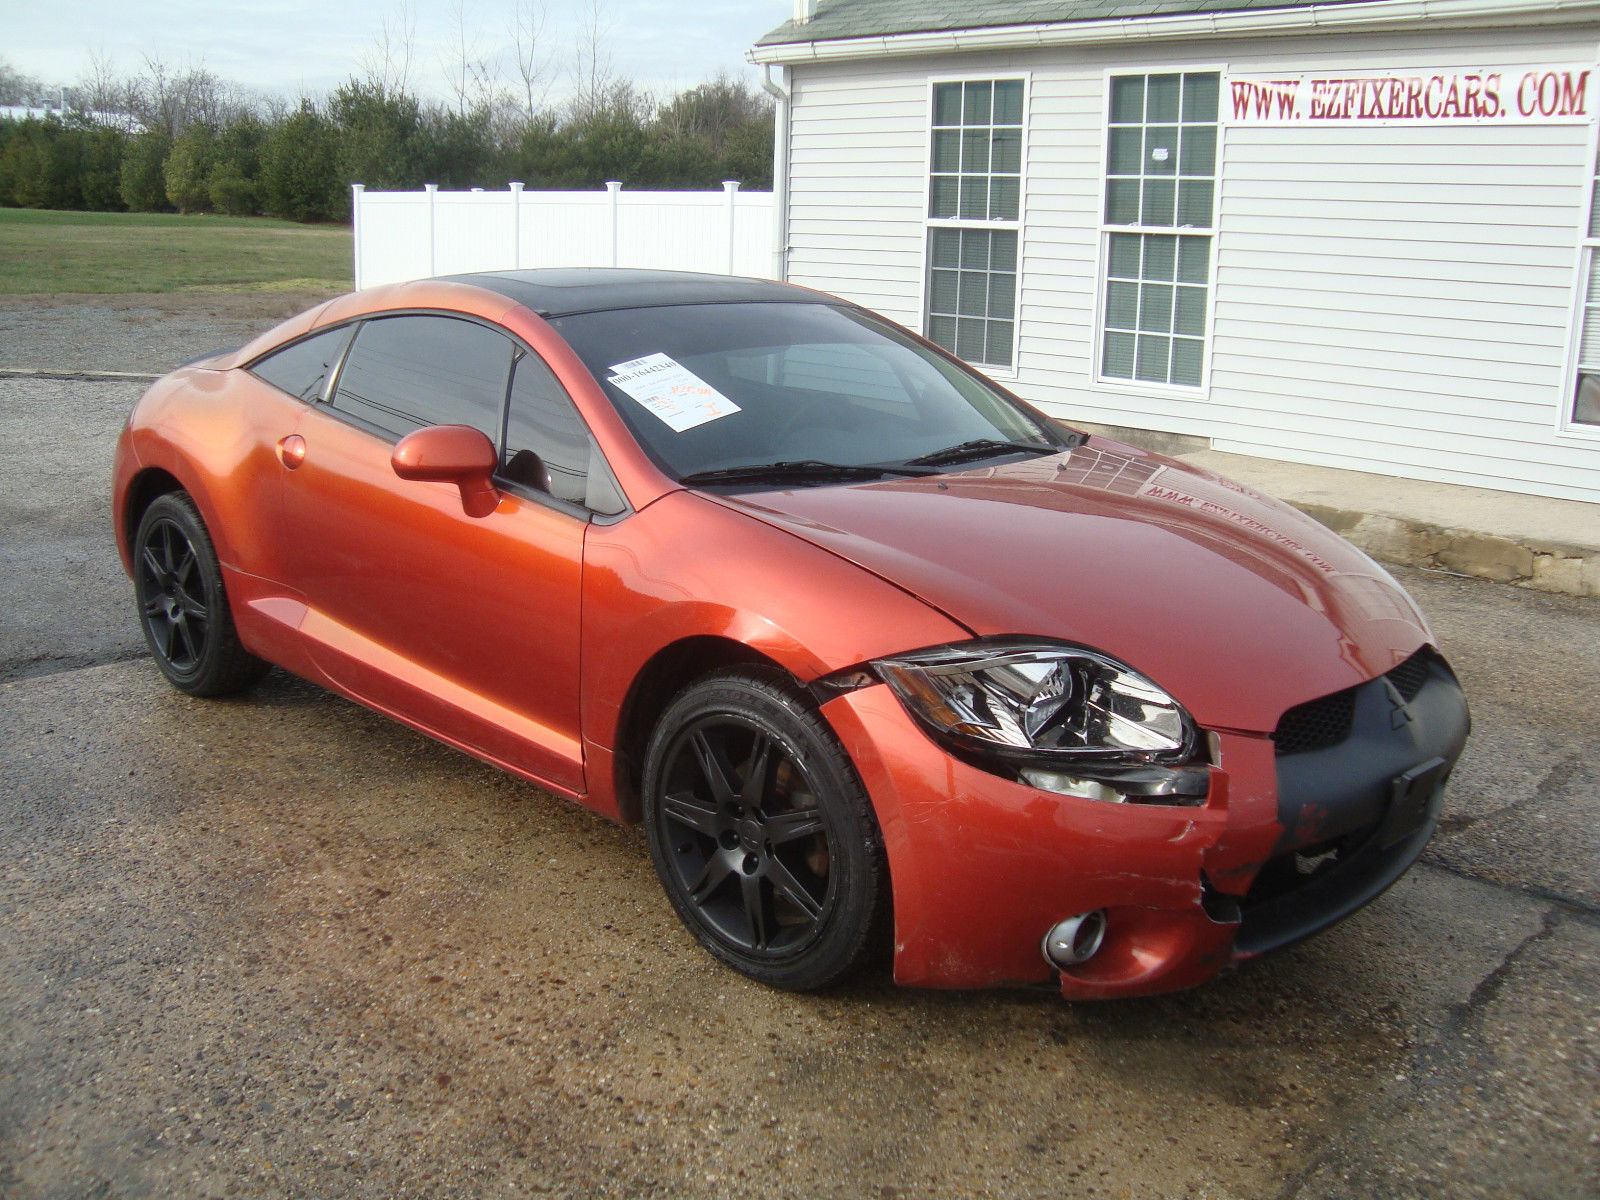 Insurance Salvage Cars For Sale >> 2006 Mitsubishi Eclipse GT V6 Automatic Leather Salvage Rebuildable for sale